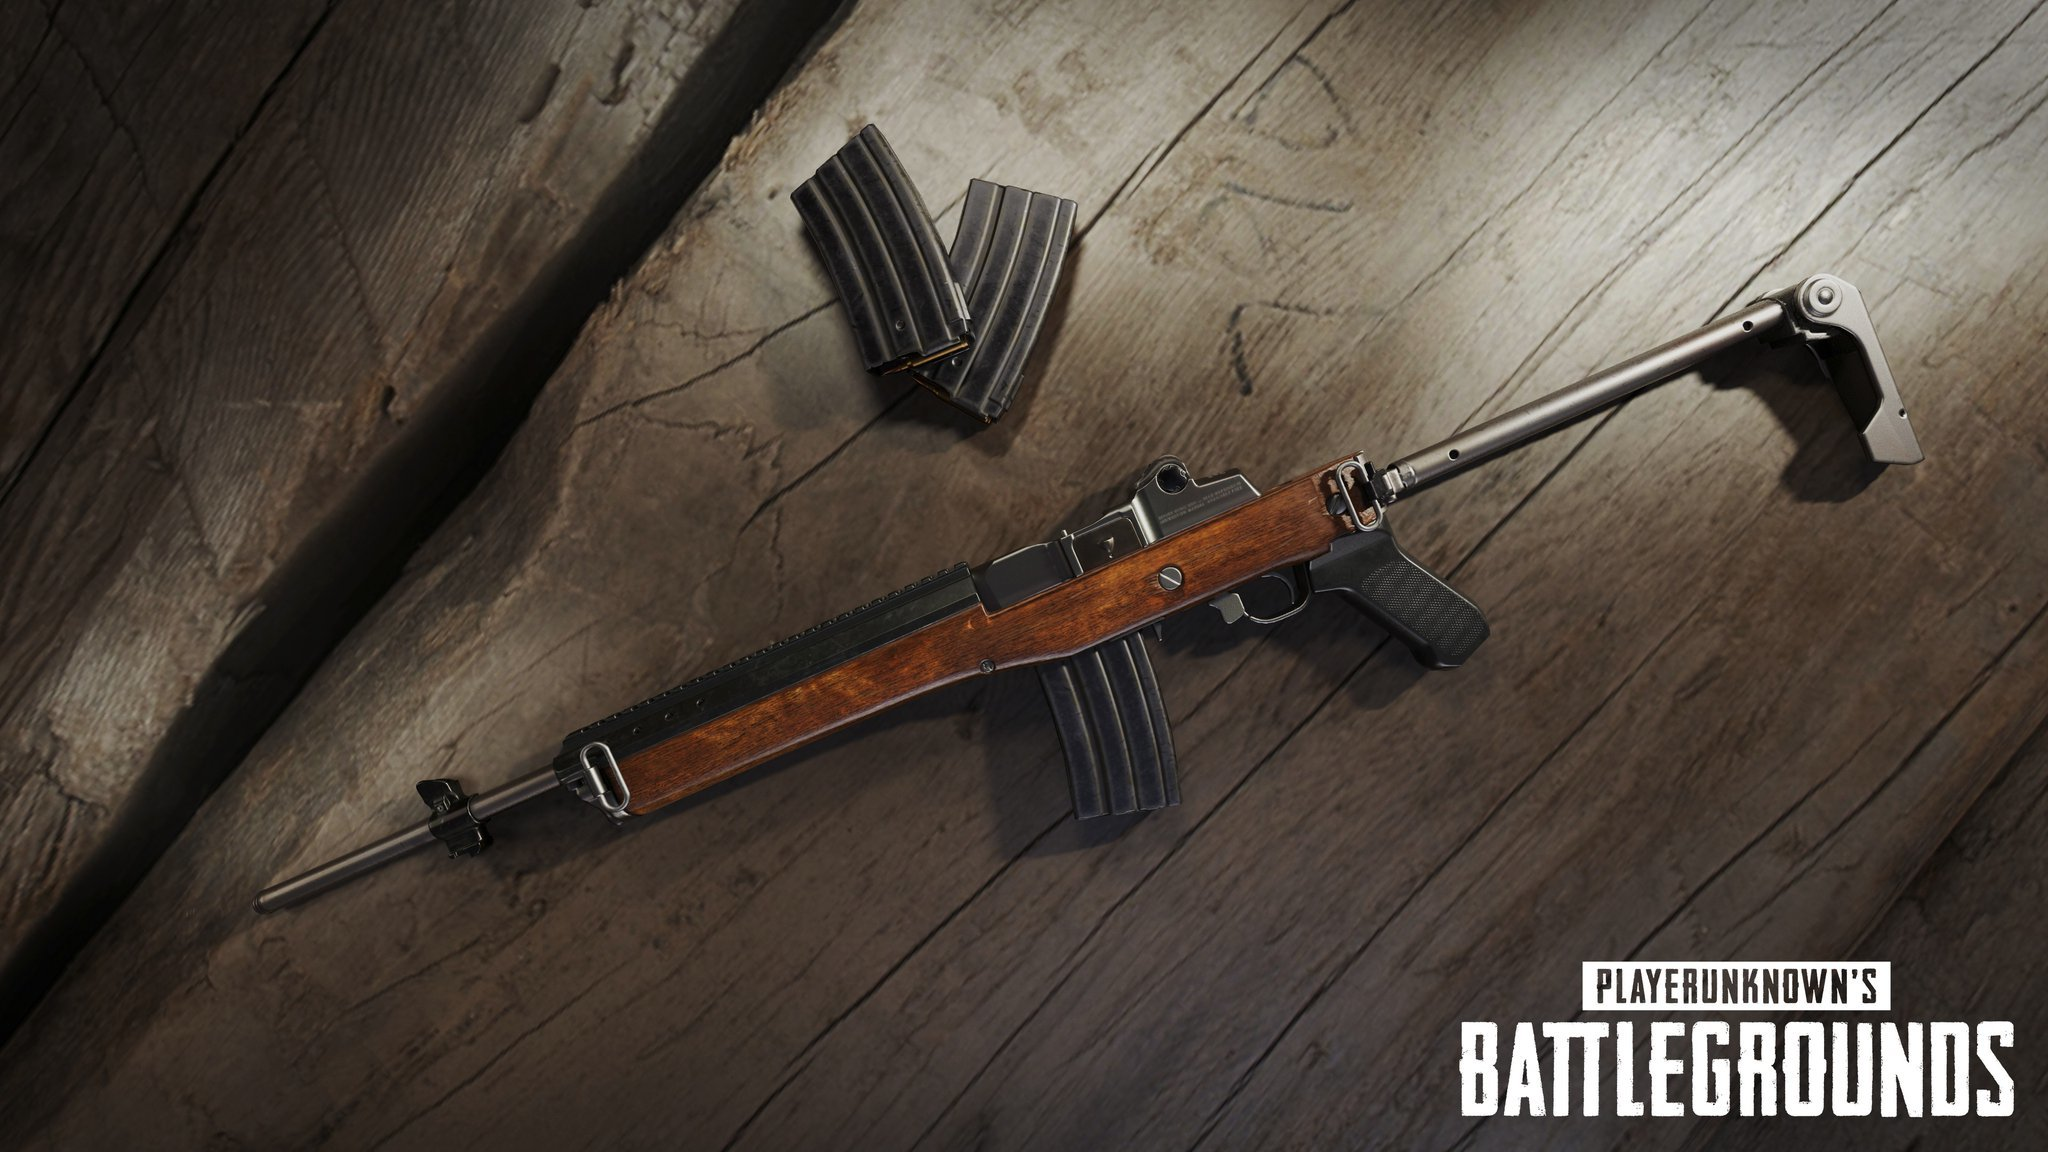 PLAYERUNKNOWN'S BATTLEGROUNDS latest update offers some new performance optimisations